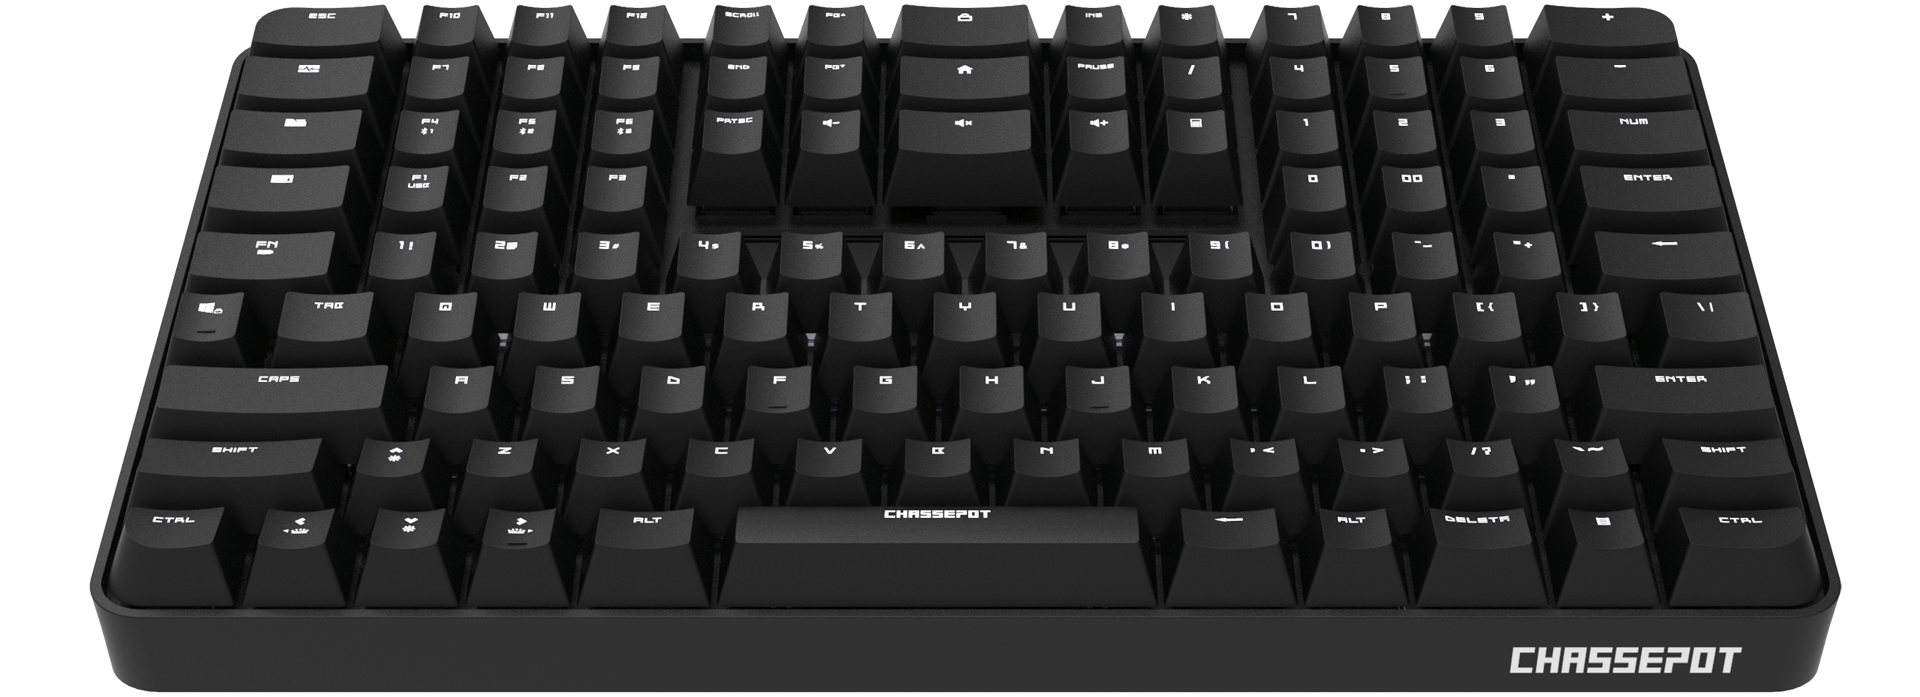 Narrow and tall: check out the C1000 keyboard that places the numpad on top